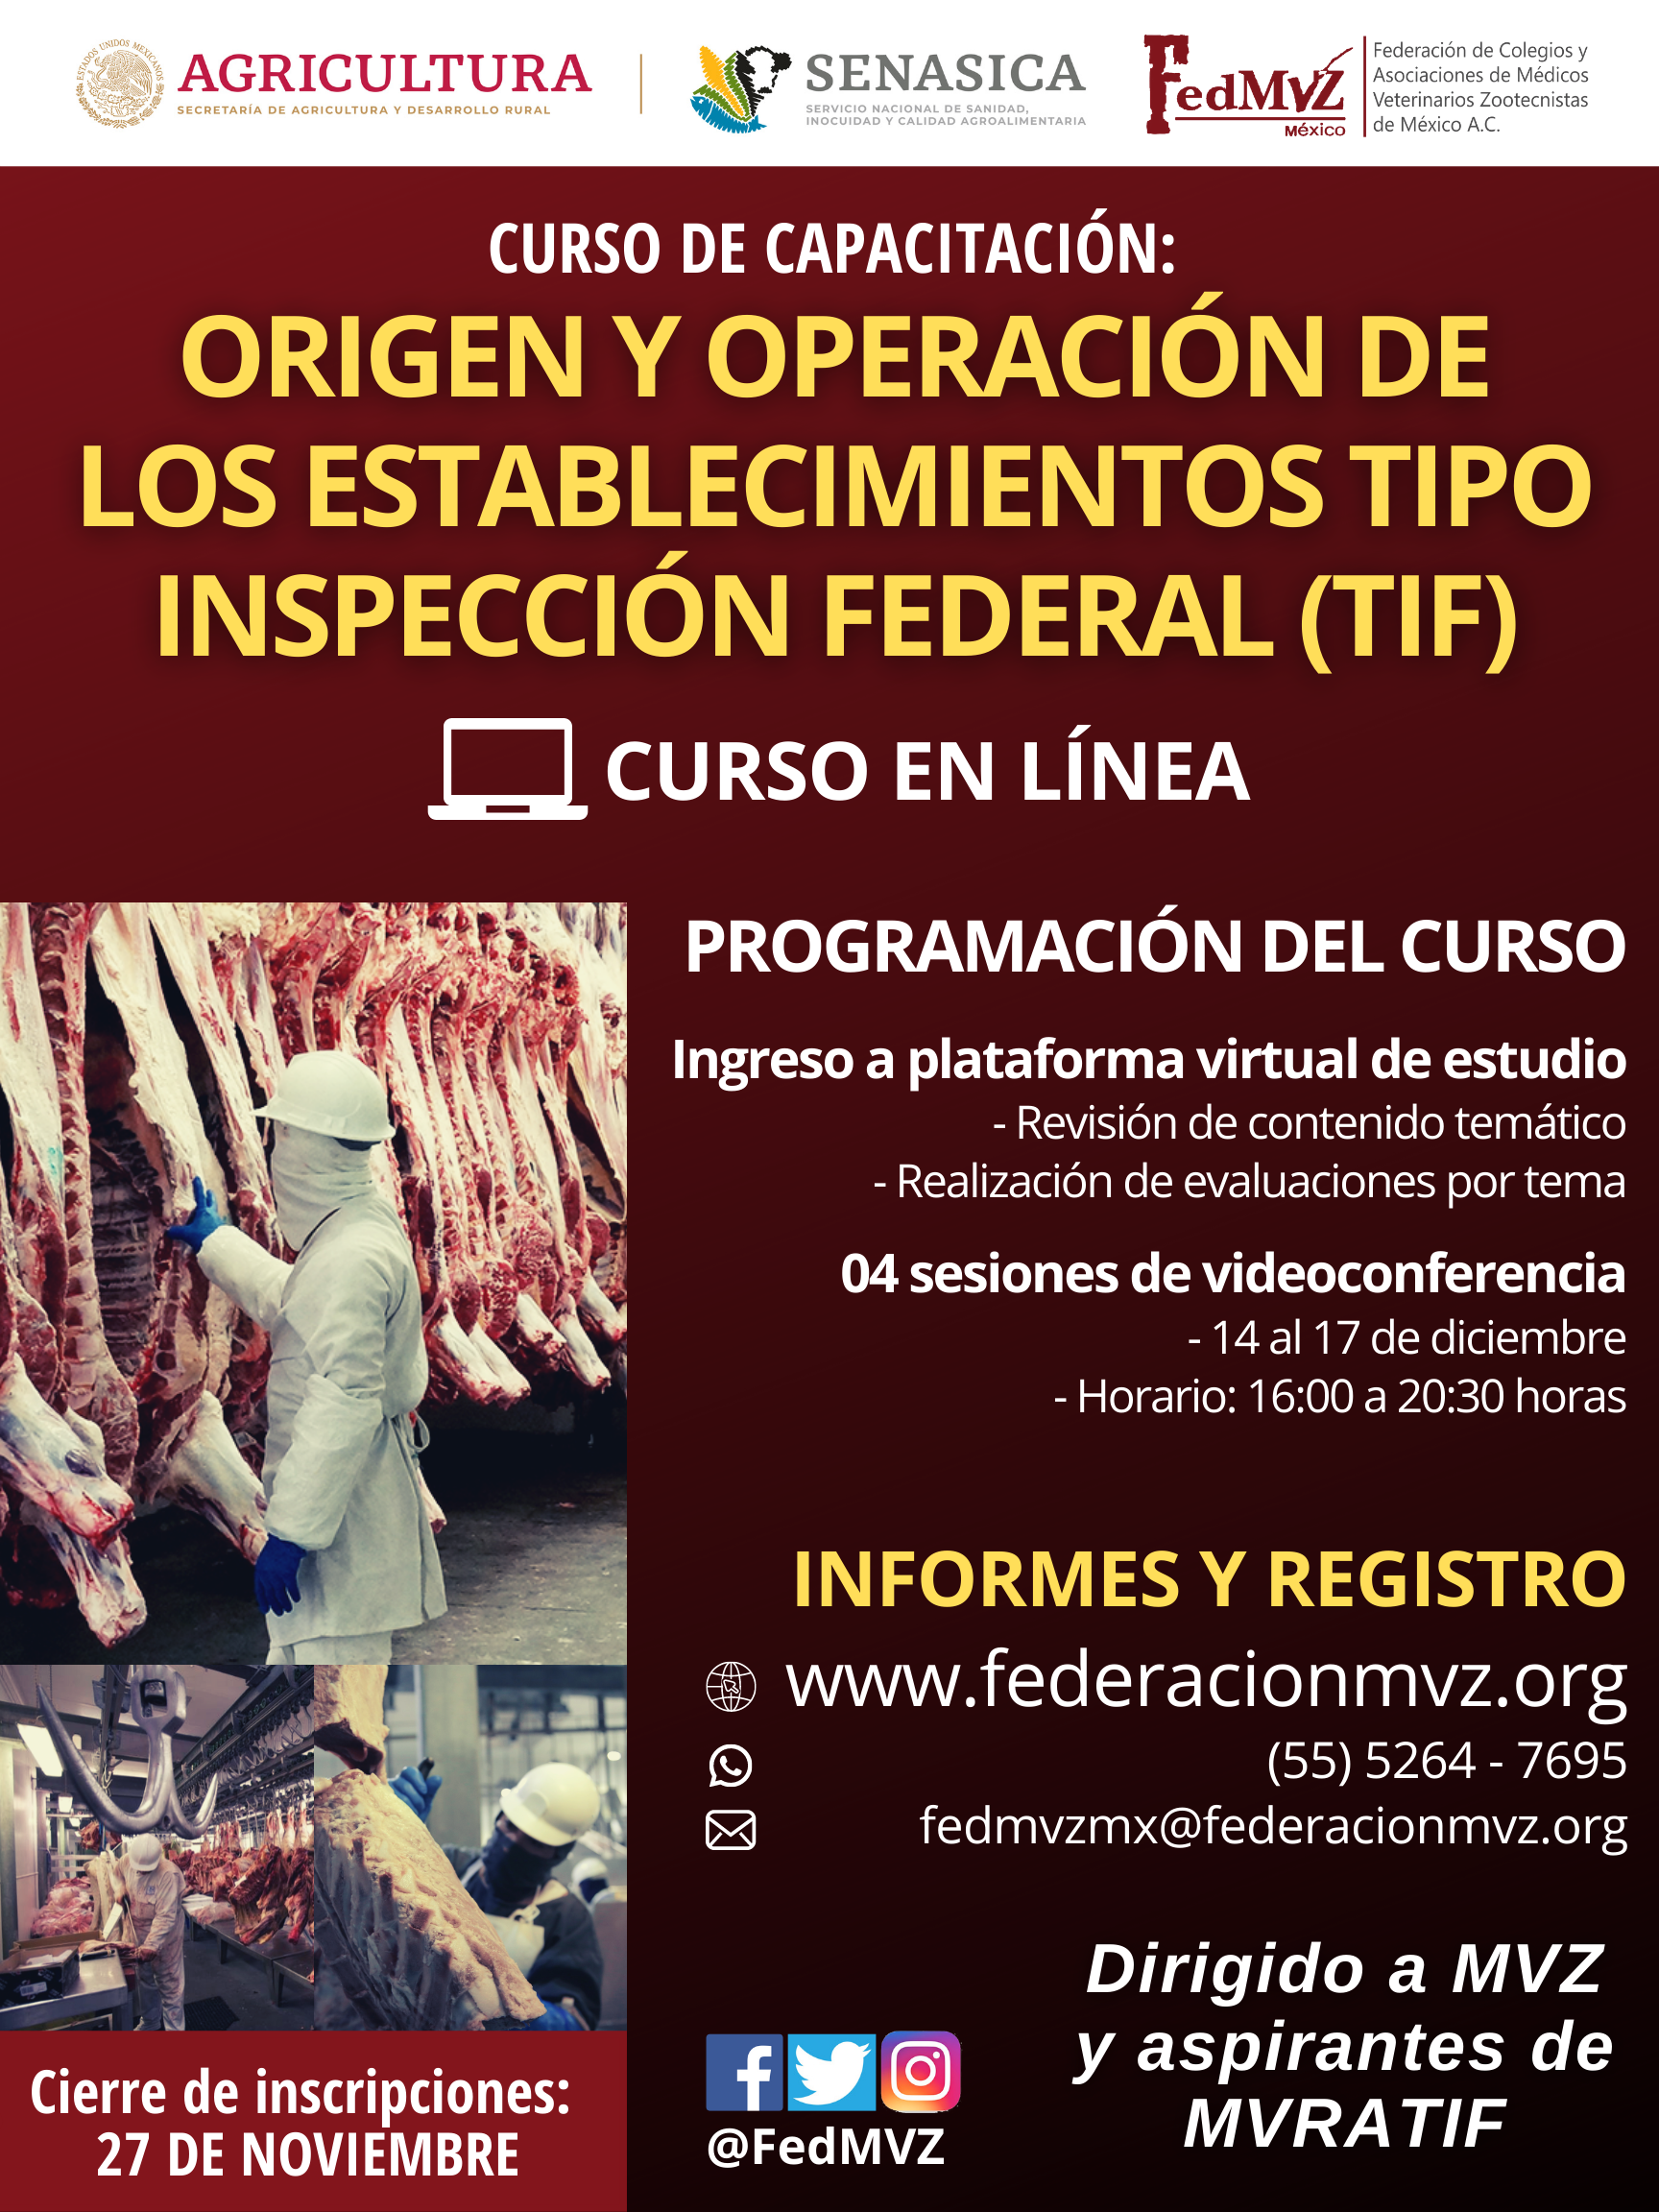 CURSO EN LÍNEA TIF DICIEMBRE 2020